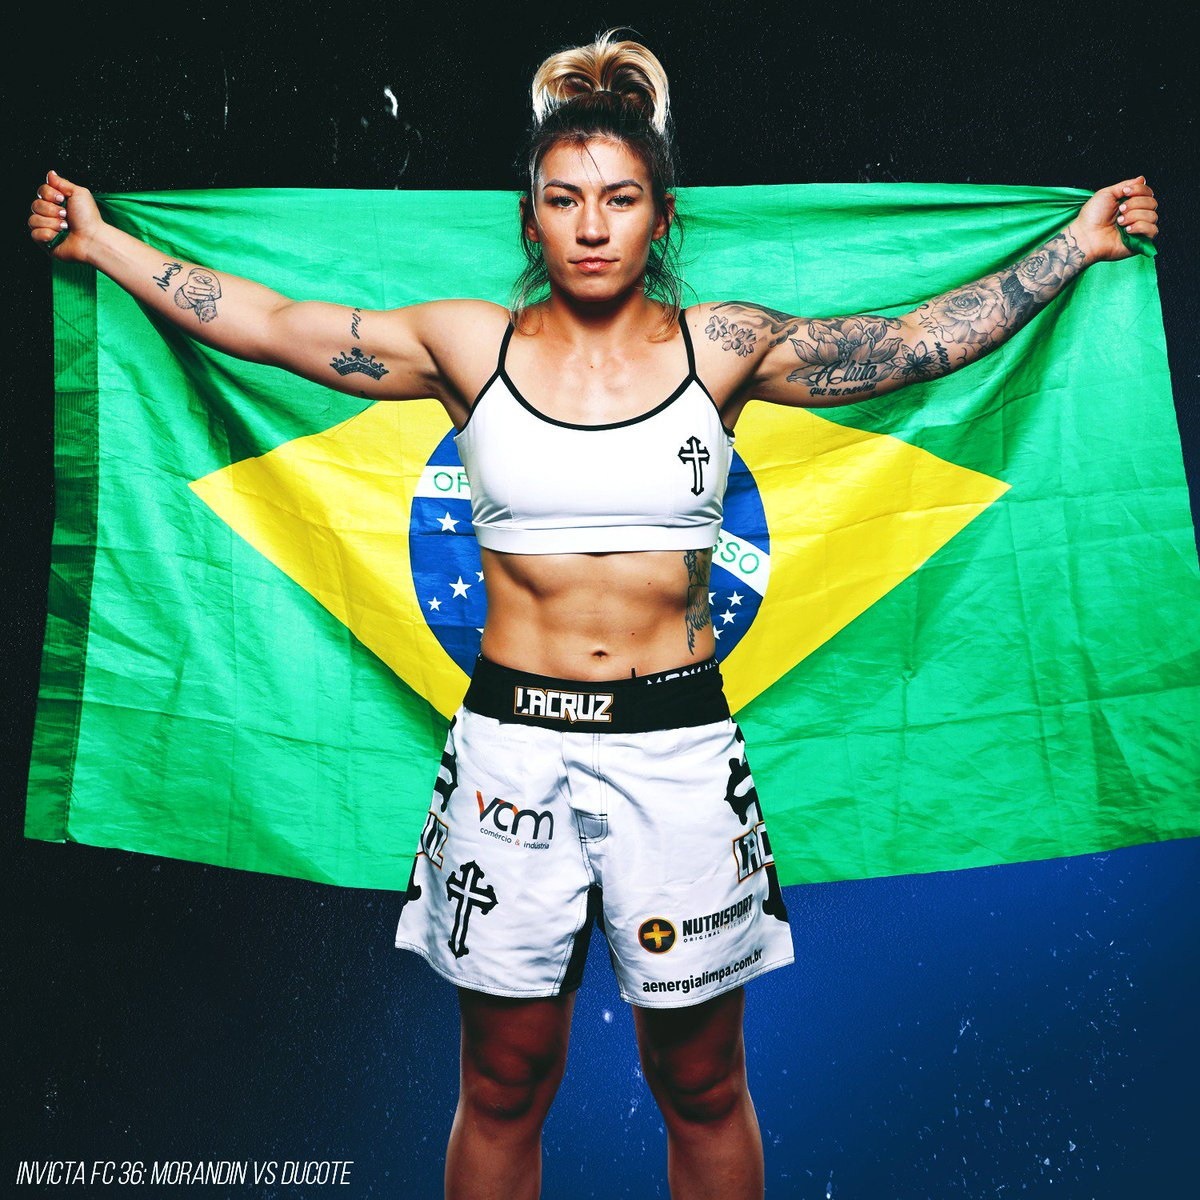 """InvictaFights """"I want to show that I am a complete athlete and that I'm ready for anything."""" - janaisamma #InvictaFC36 🇧🇷  #wmma"""